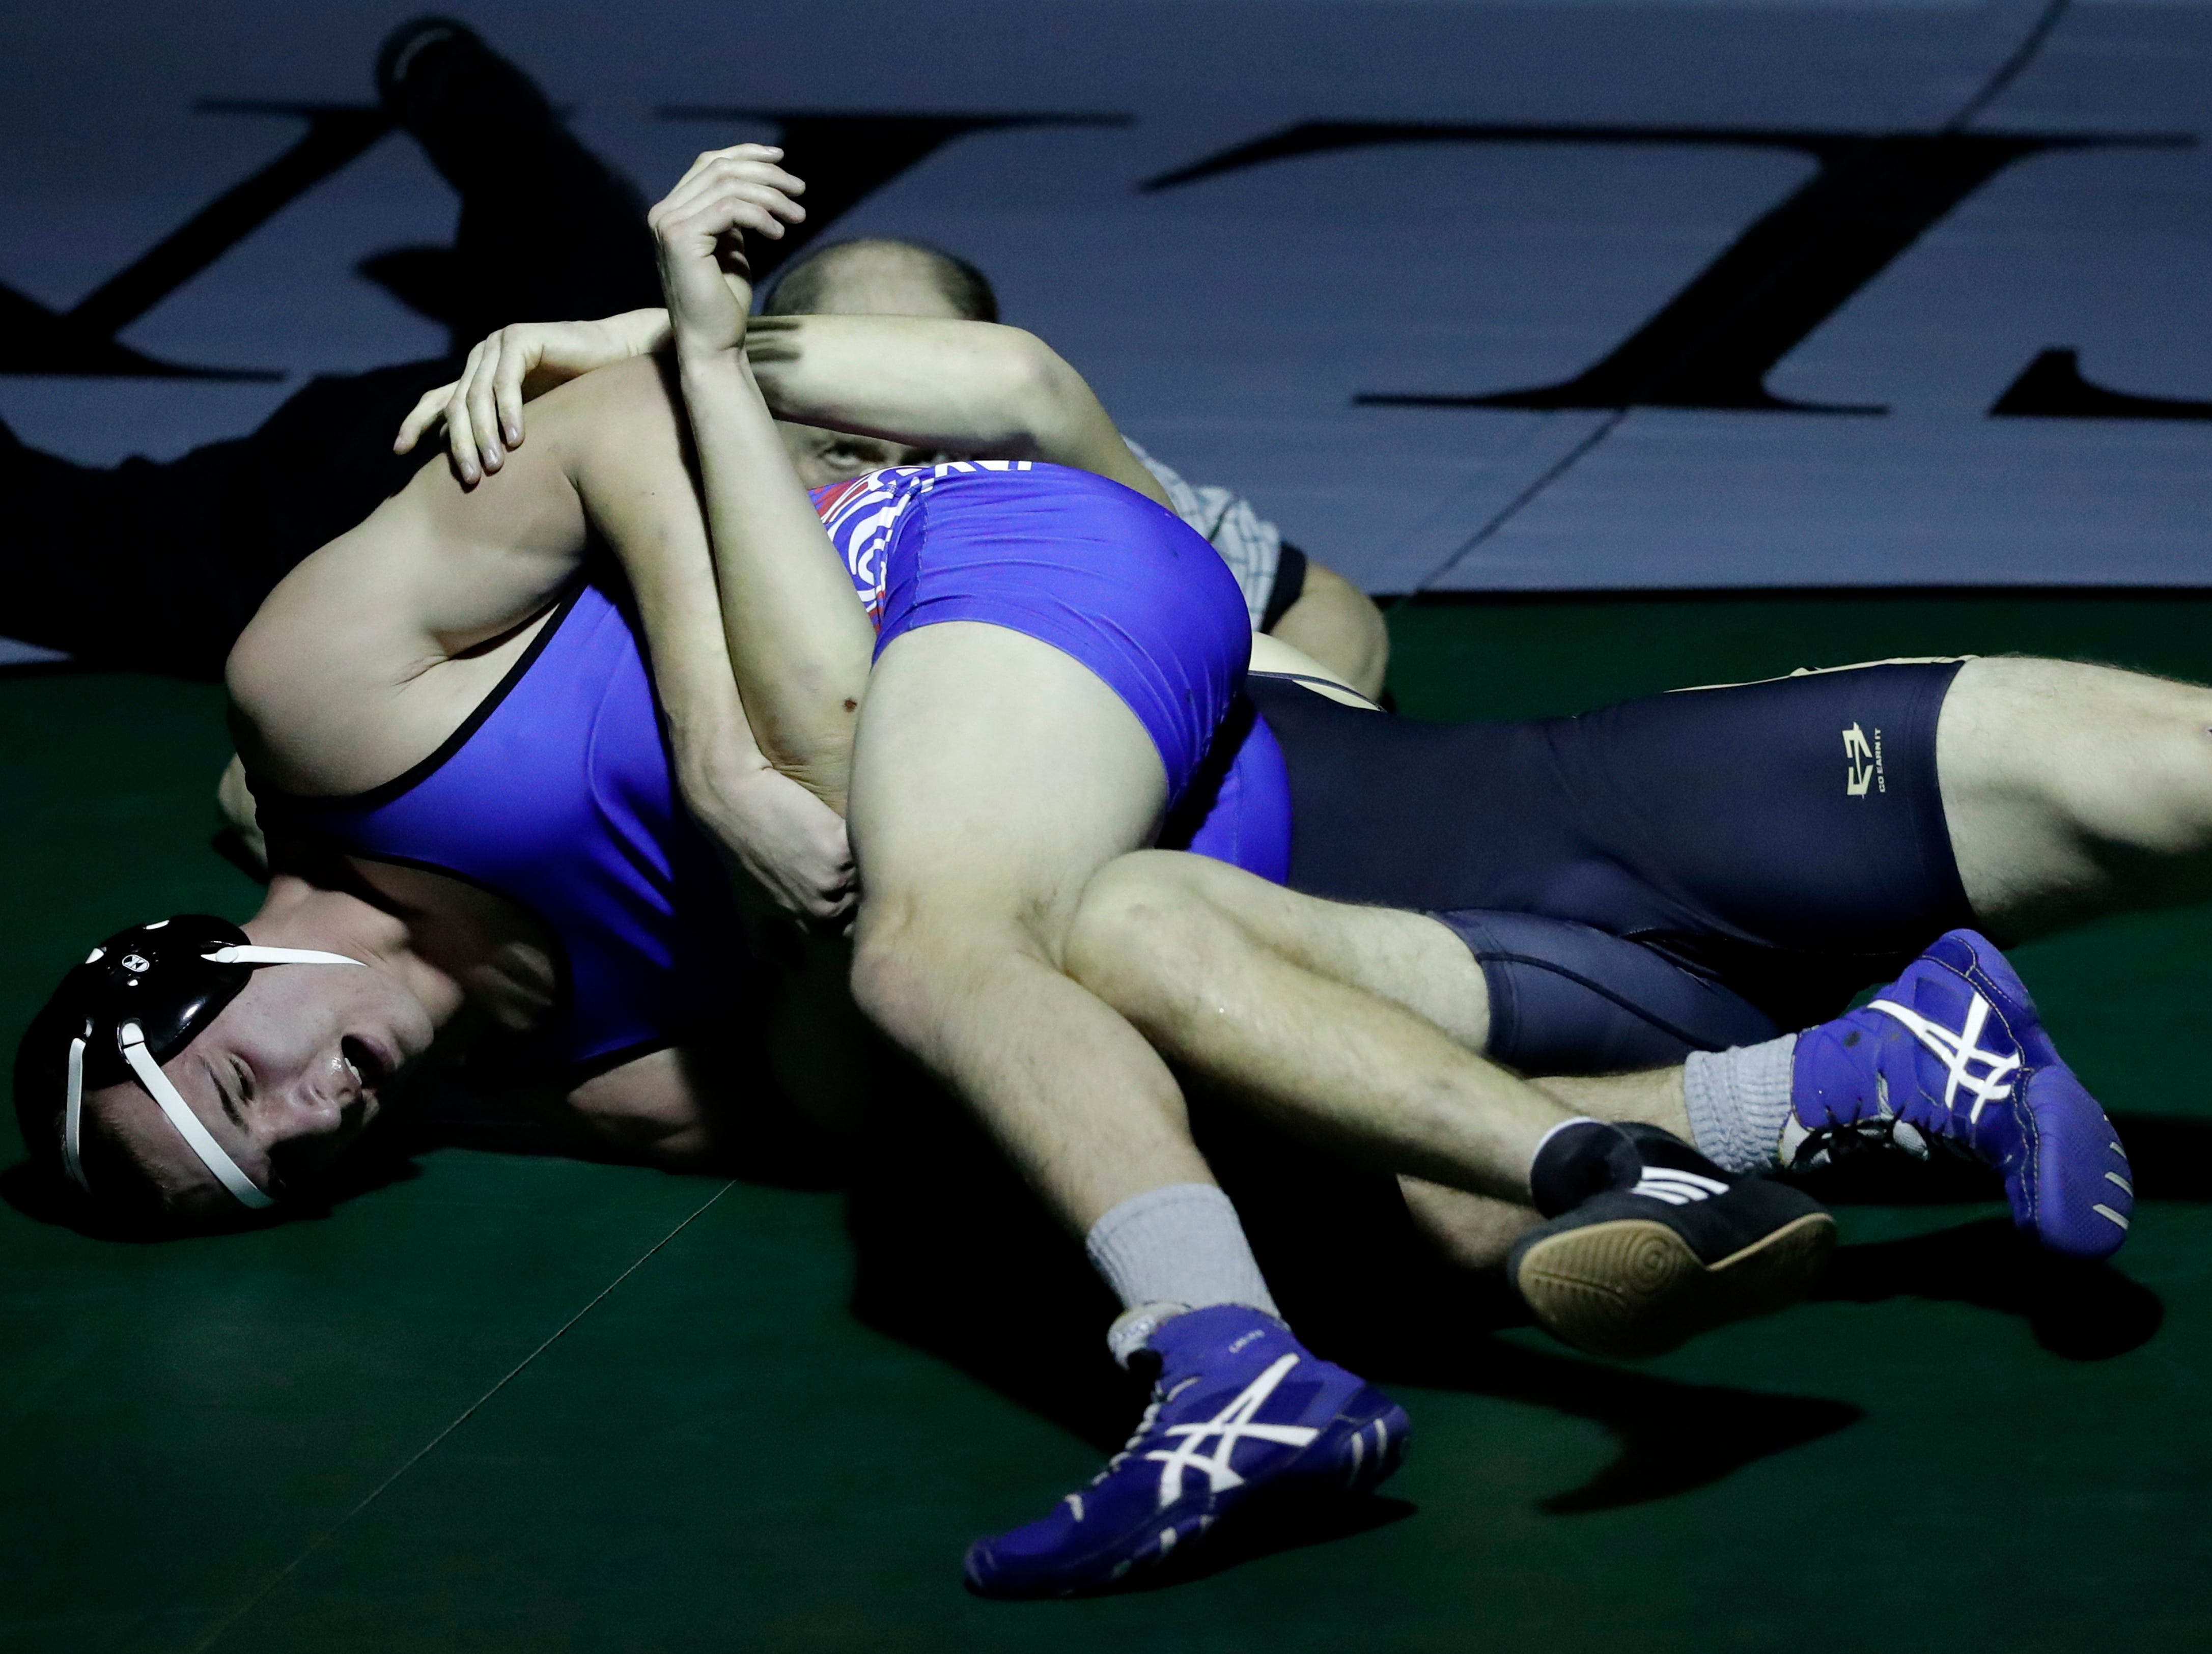 Freedom High School's Devan VanRossum, bottom, wrestles against Waupaca High School's Brock Sanger during their 195-lb wrestling match Thursday, December 6, 2018, in Freedom, Wis. 